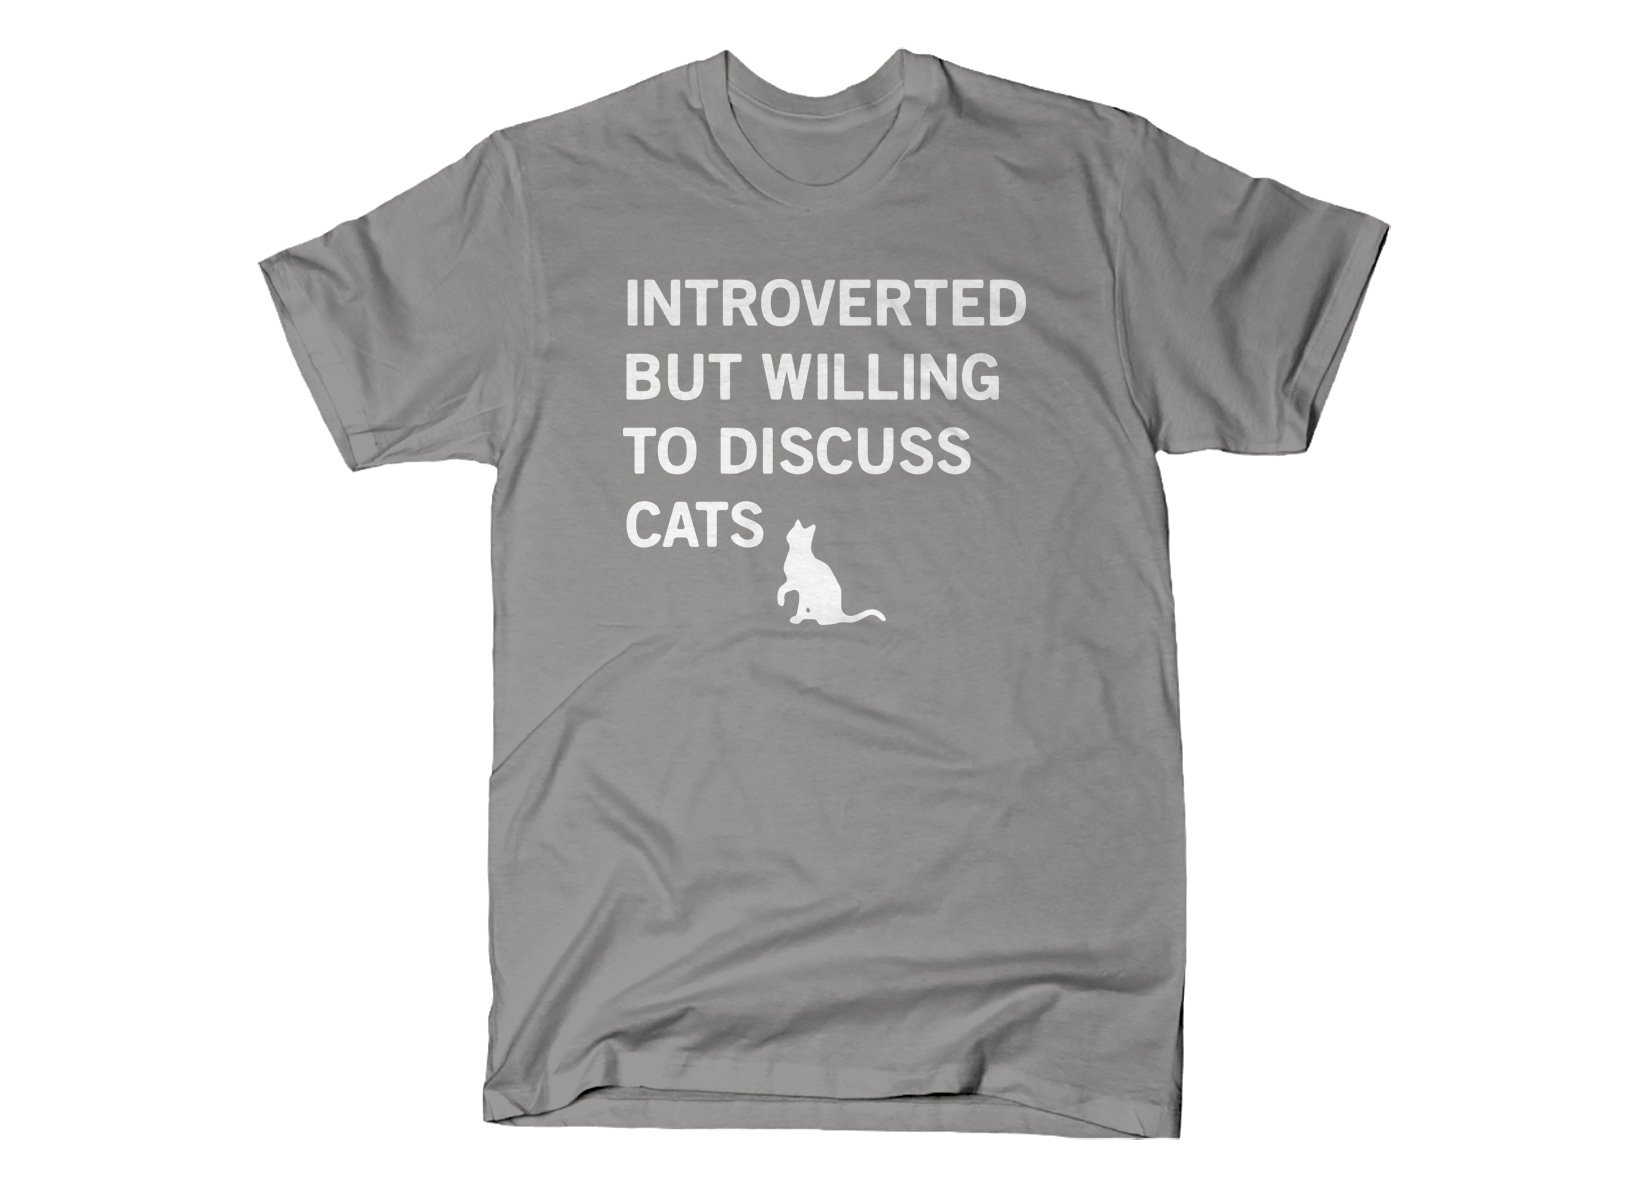 Introverted But Willing To Discuss Cats on Mens T-Shirt